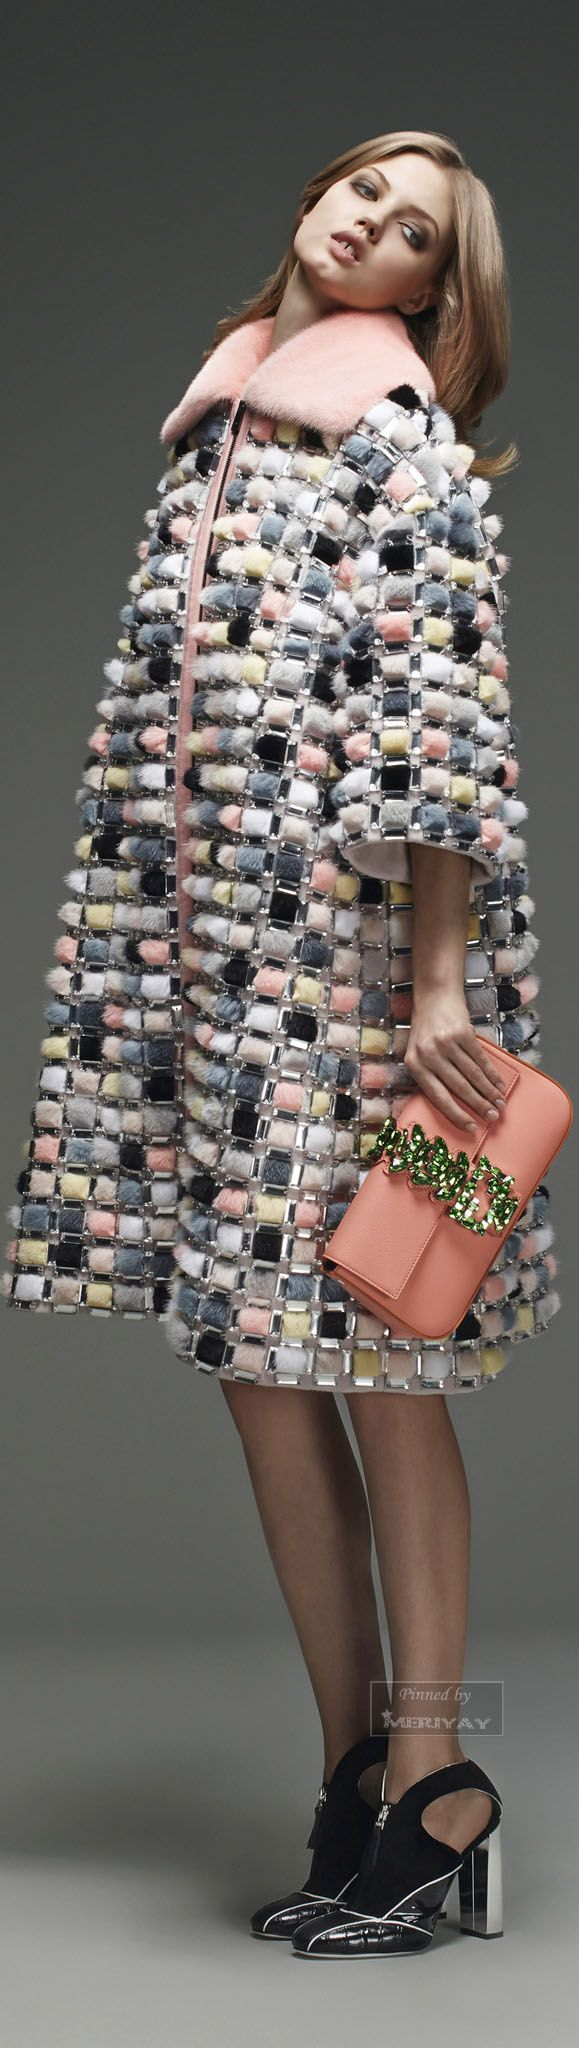 Fendi Pre-Fall 2015 #Fashion #Women_Style                                                                                                                                                      More